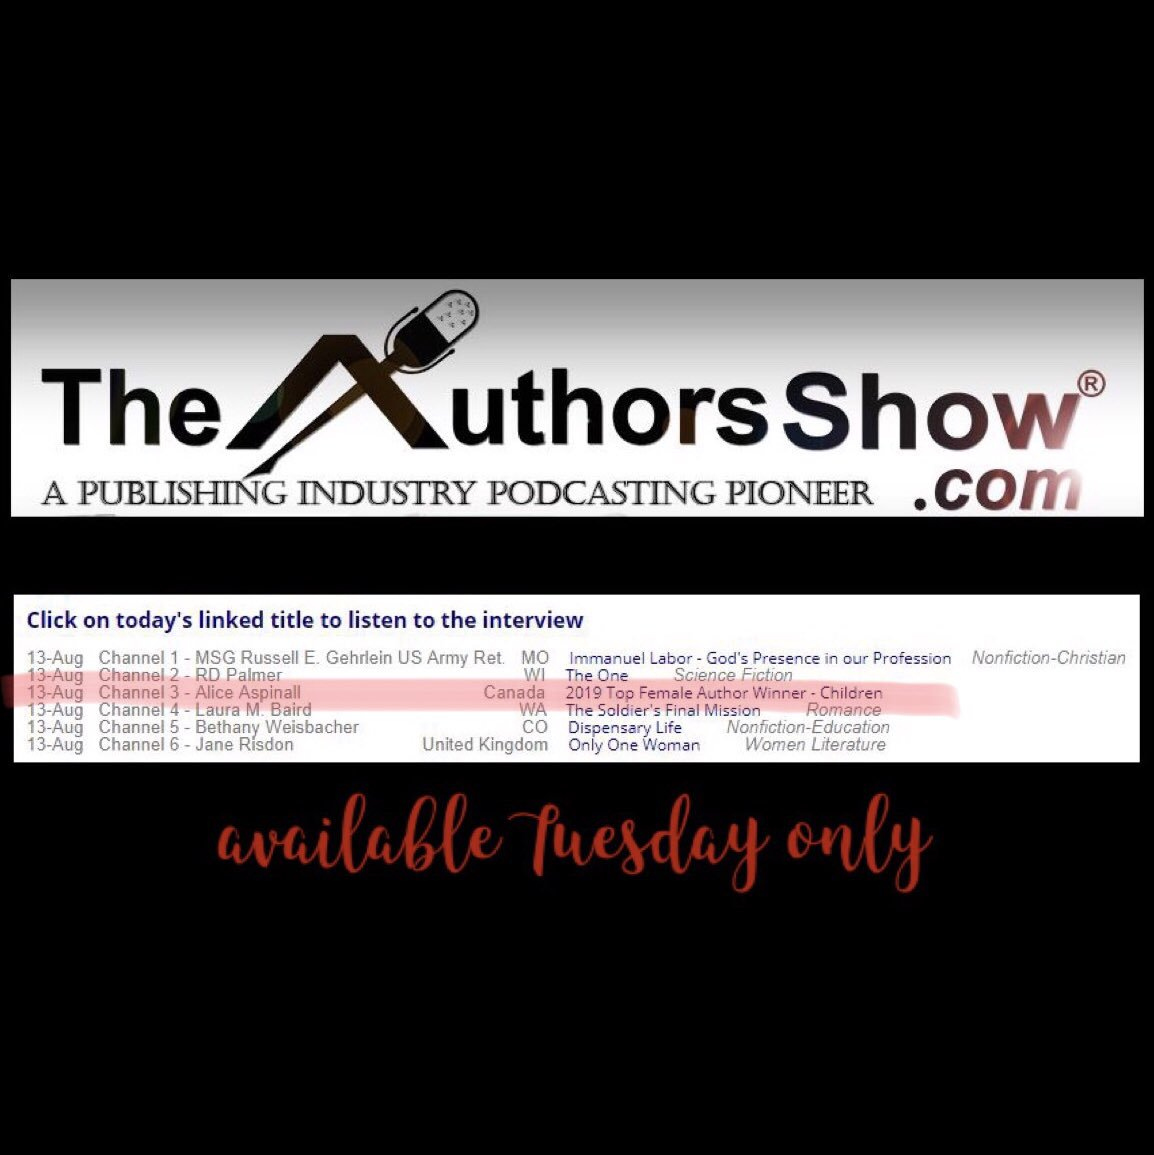 test Twitter Media - Listen to Alice's latest interview about Everyone Can Learn Math and winning the Top Female Author Award today only at @TheAuthorsShow  https://t.co/pNryzcdTl5 #everyonecanlearnmath #picturebooks #childrensbook #childrensbooks #kidsbook #kidsbooks #mathbook #childrensauthor https://t.co/UQjmEL7na7